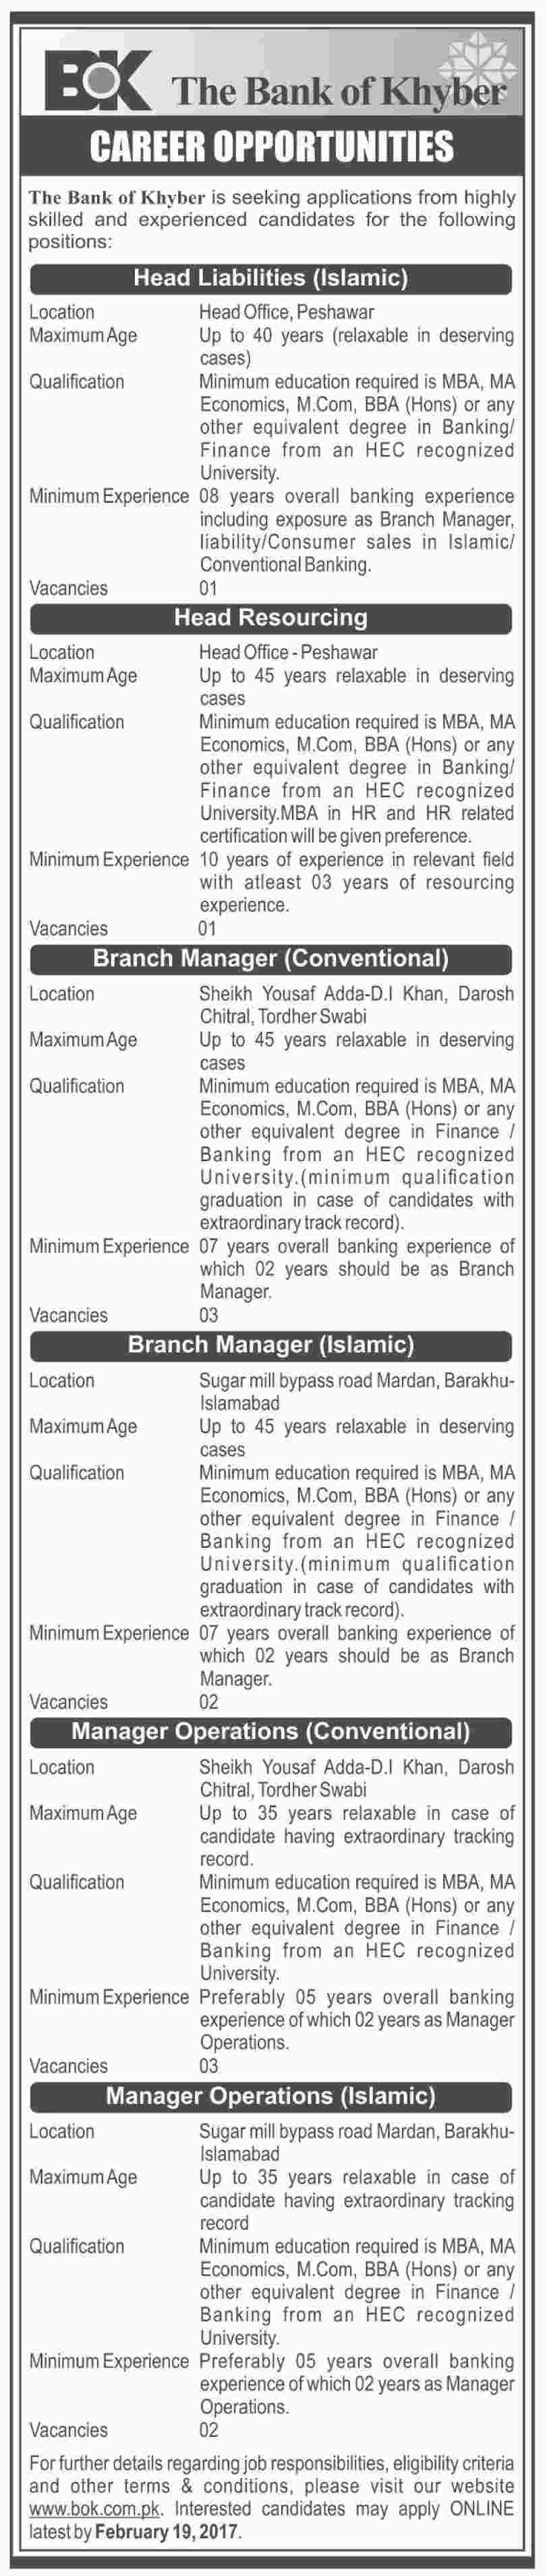 BOK Jobs 2017 The Bank Of Khyber